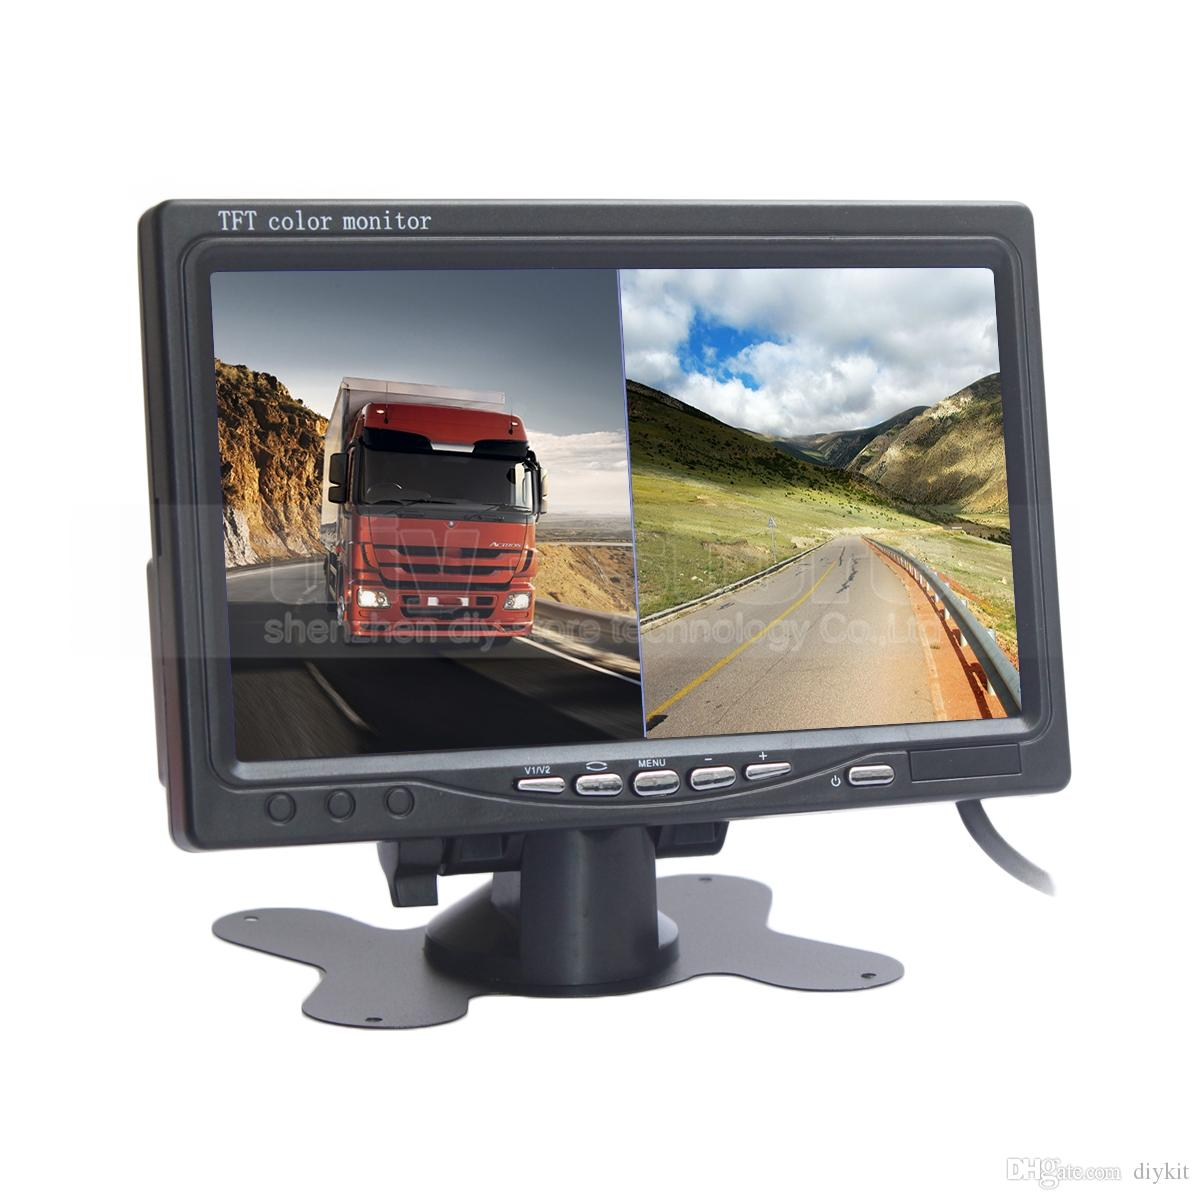 DIYKIT 7inch TFT LCD Color Rear View Monitor Car Monitor with 2 x 4PIN Video Input Diaplay Two Cameras Image